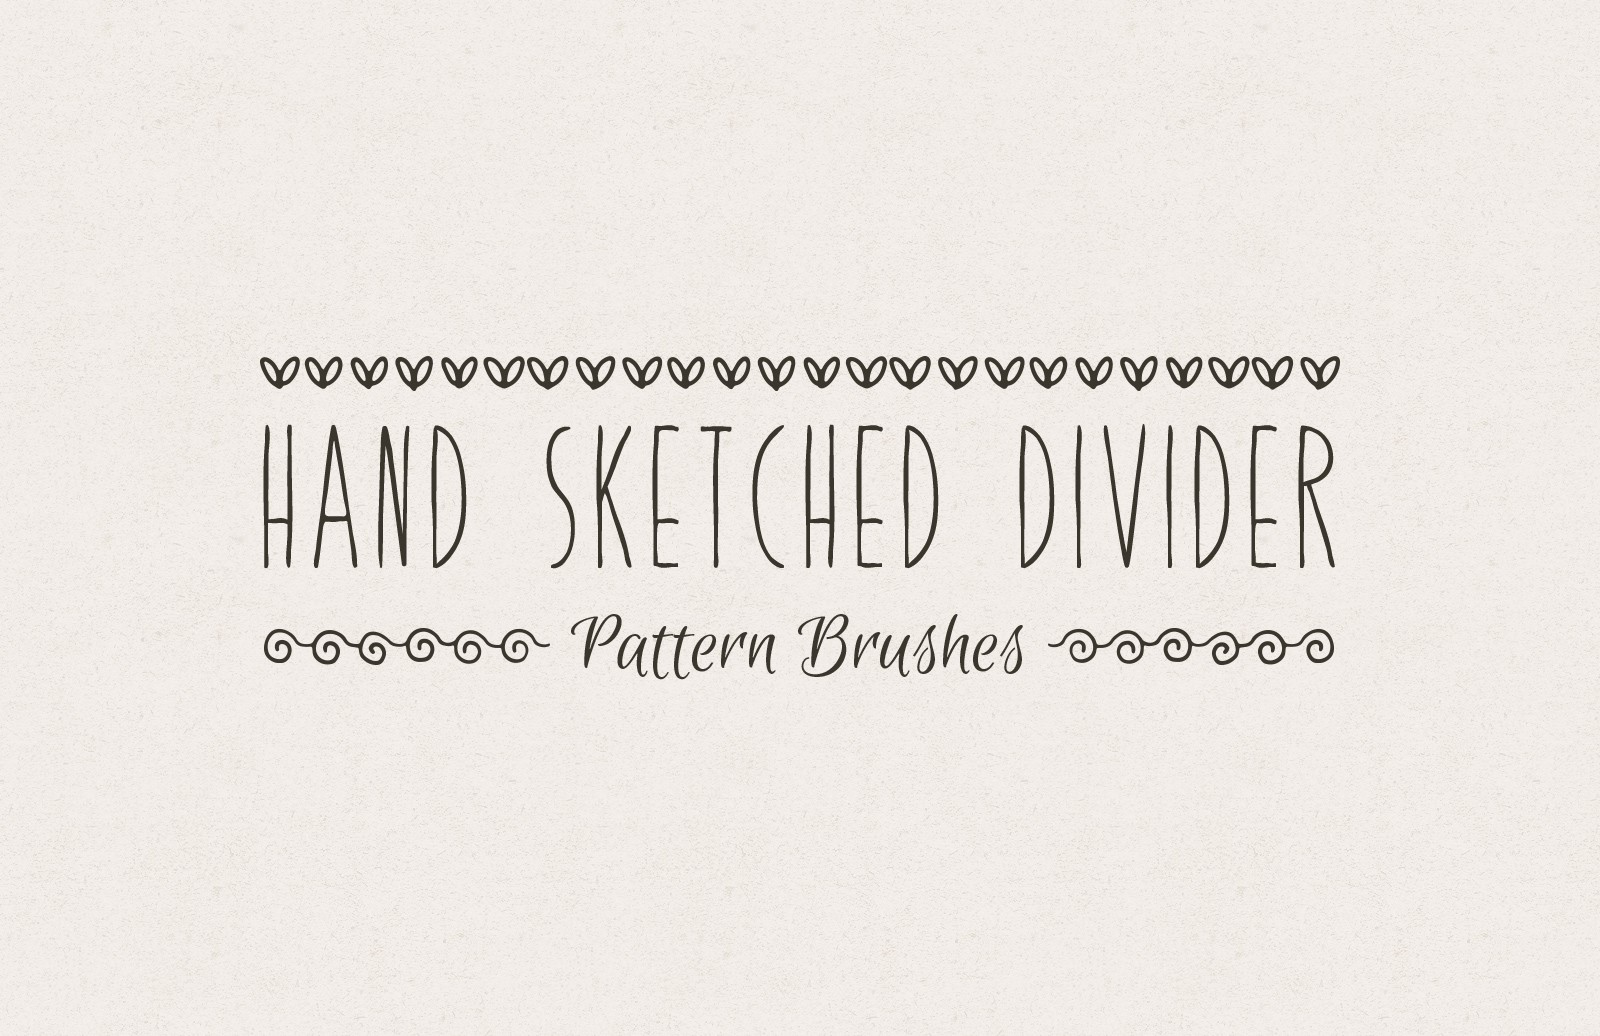 Hand Sketched Divider Pattern Brushes